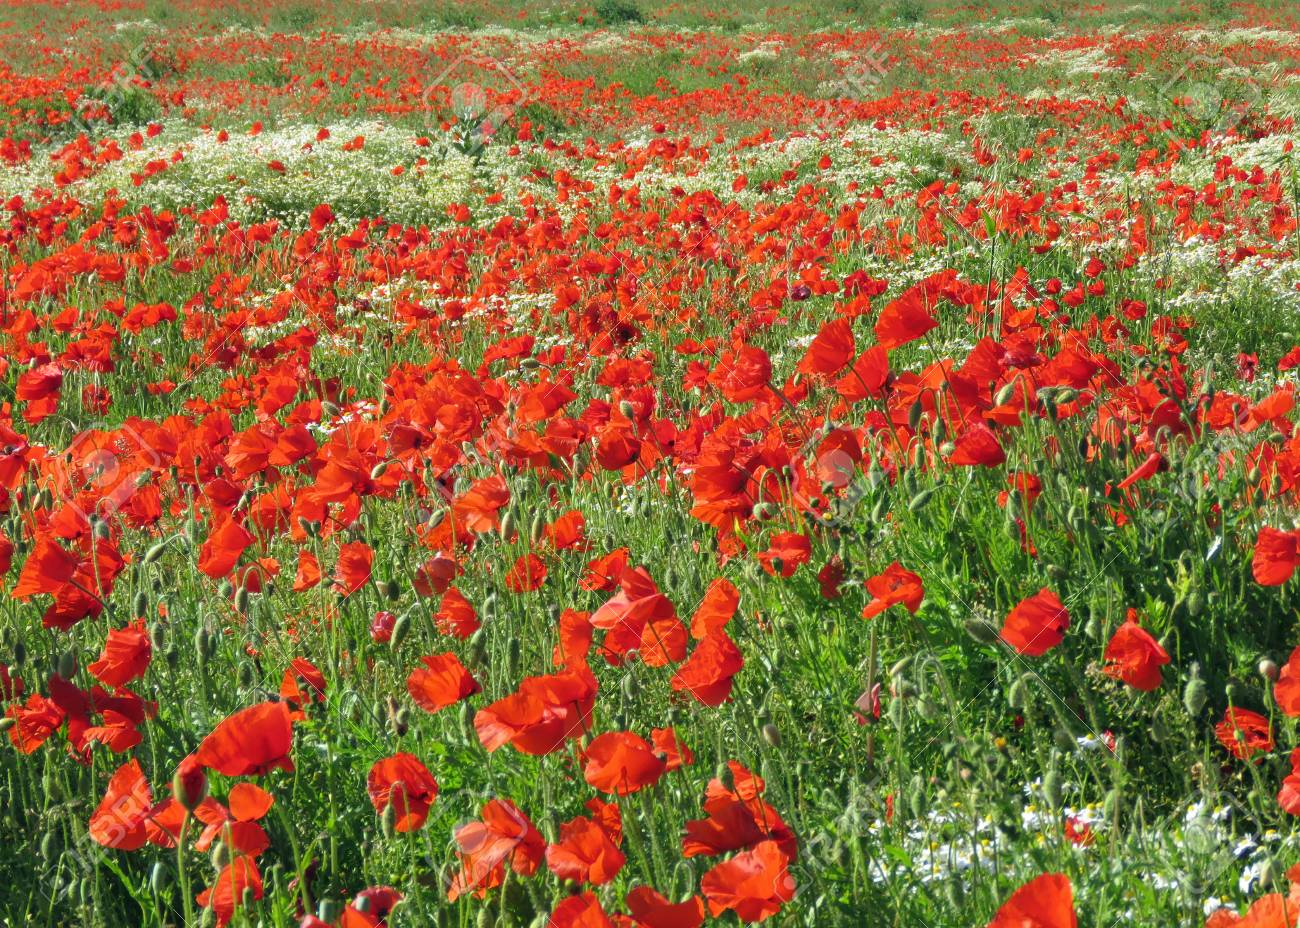 A meadow full of poppies and grasses in rural English countryside Standard-Bild - 82552571